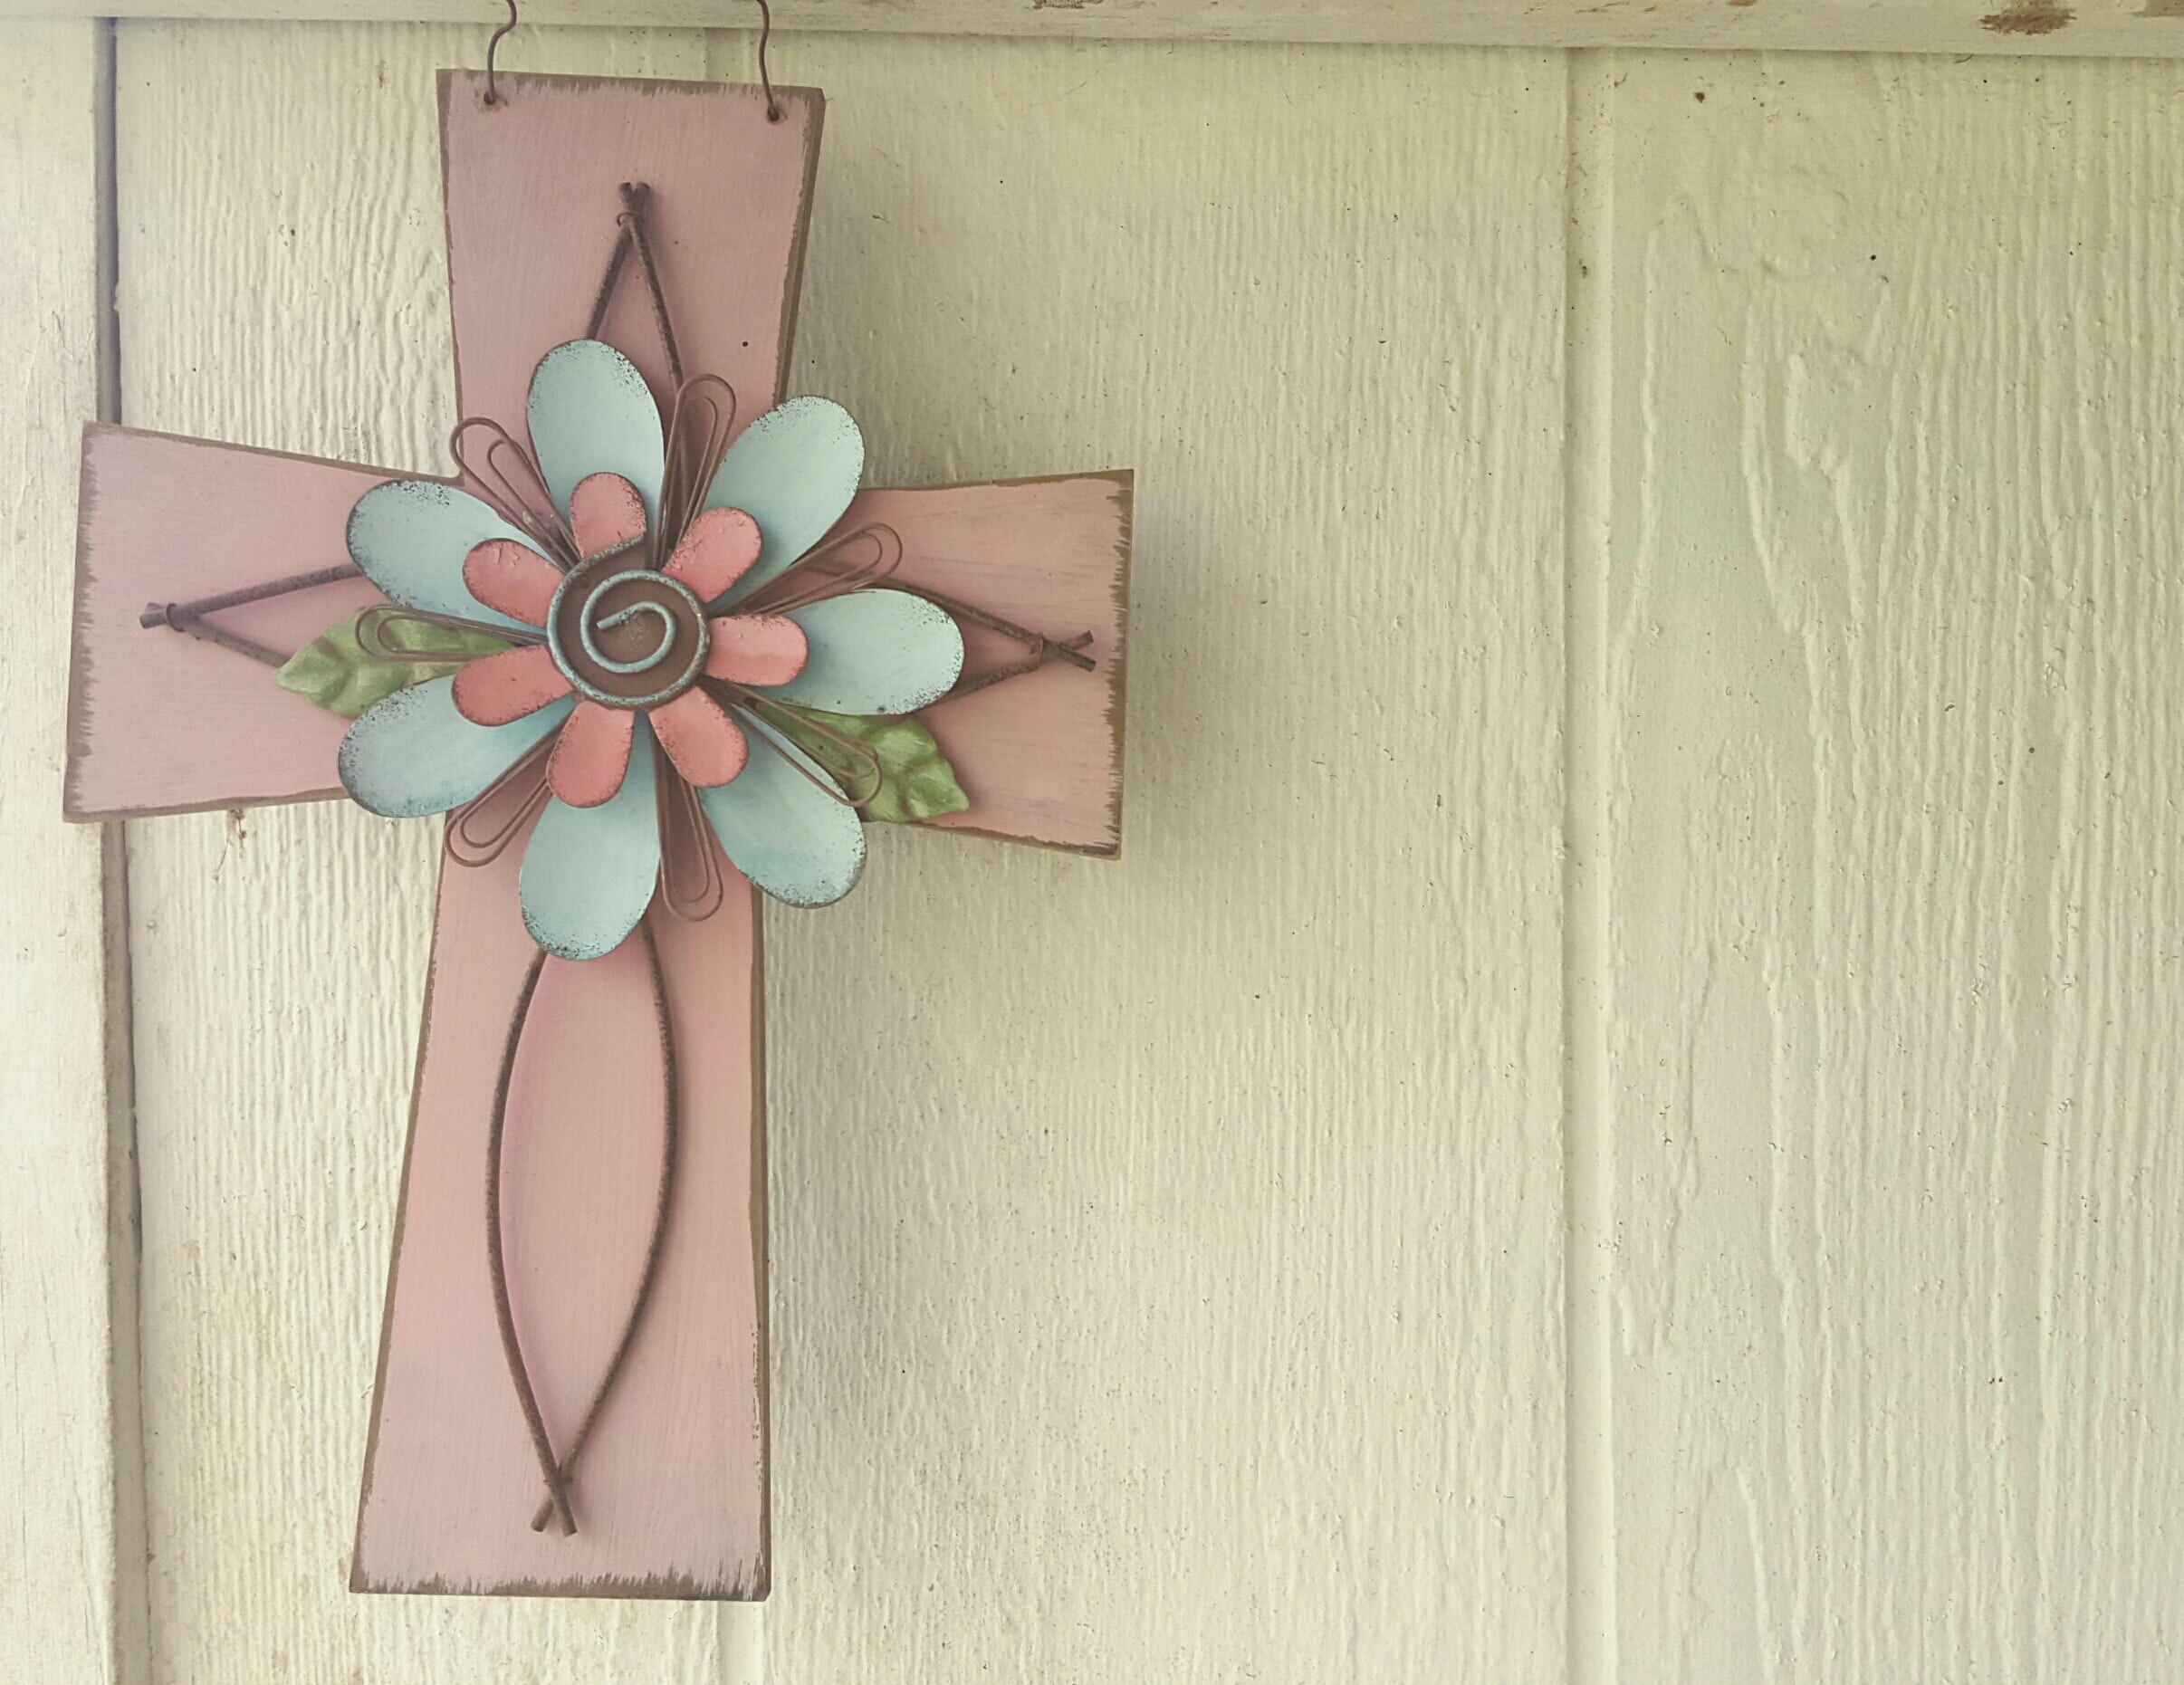 A pink cross with a flower on top.